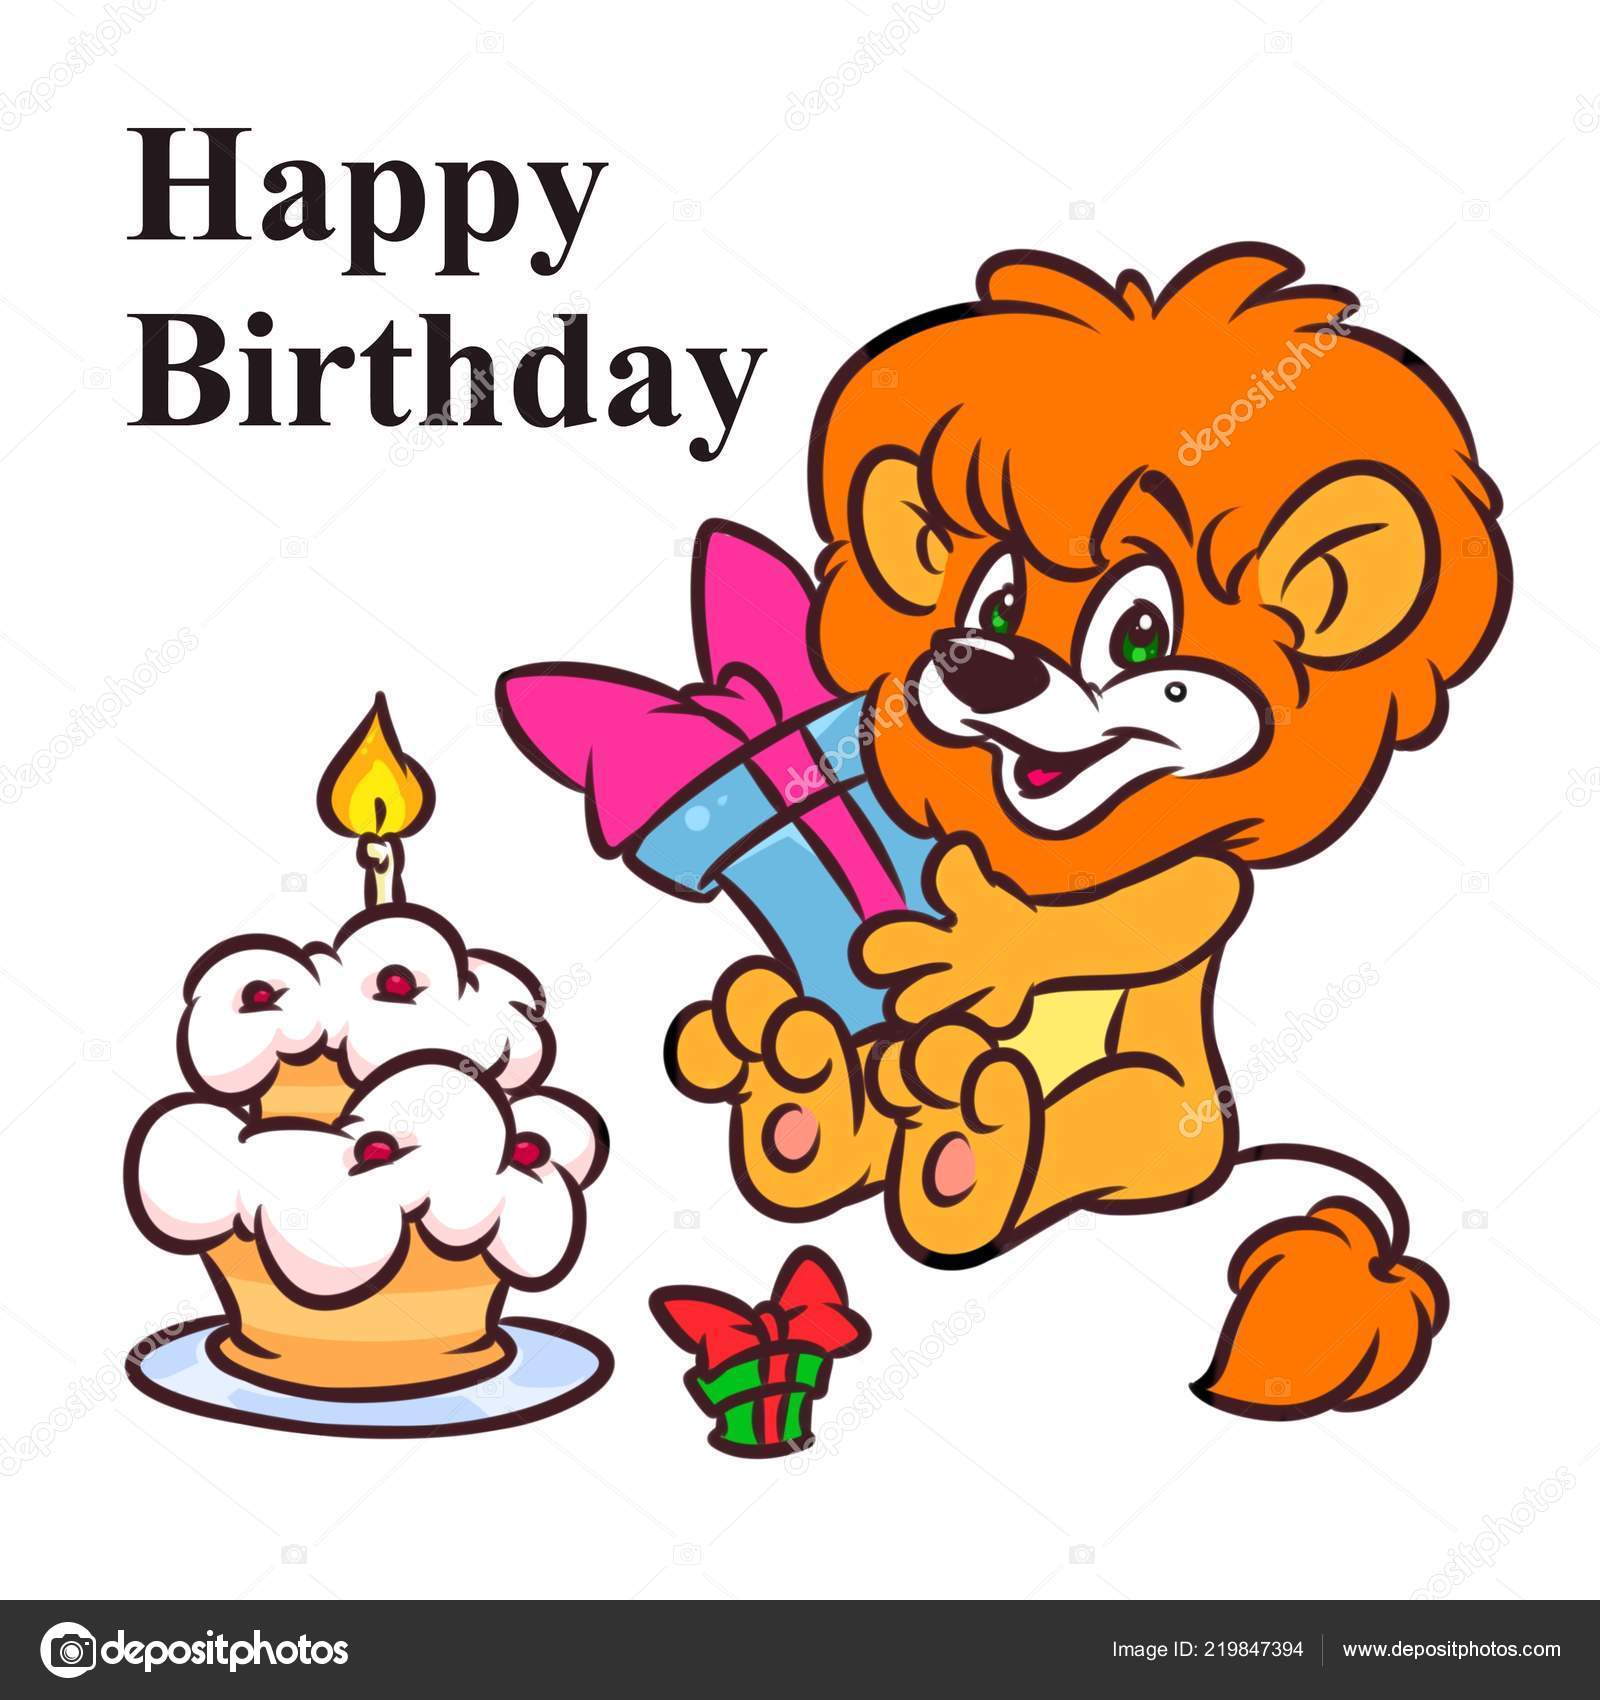 Iictures Cartoon Birthday Cakes Little Lion Happy Birthday Cake Cartoon Illustration Isolated Image Stock Photo C Efengai 219847394